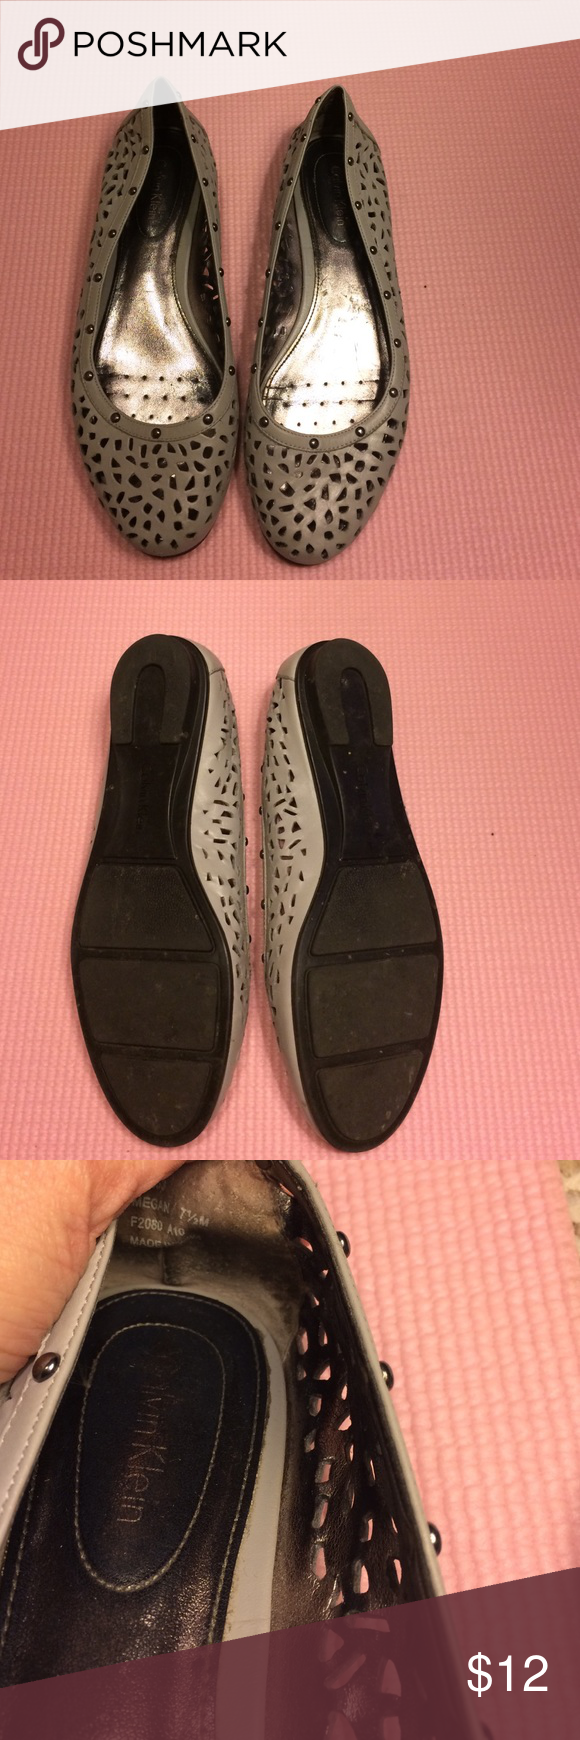 Gray studded Calvin Klein flats Cute gray cutout flats with studs around the edges. Have been worn, but still in great shape. Just too small for me. Calvin Klein Shoes Flats & Loafers